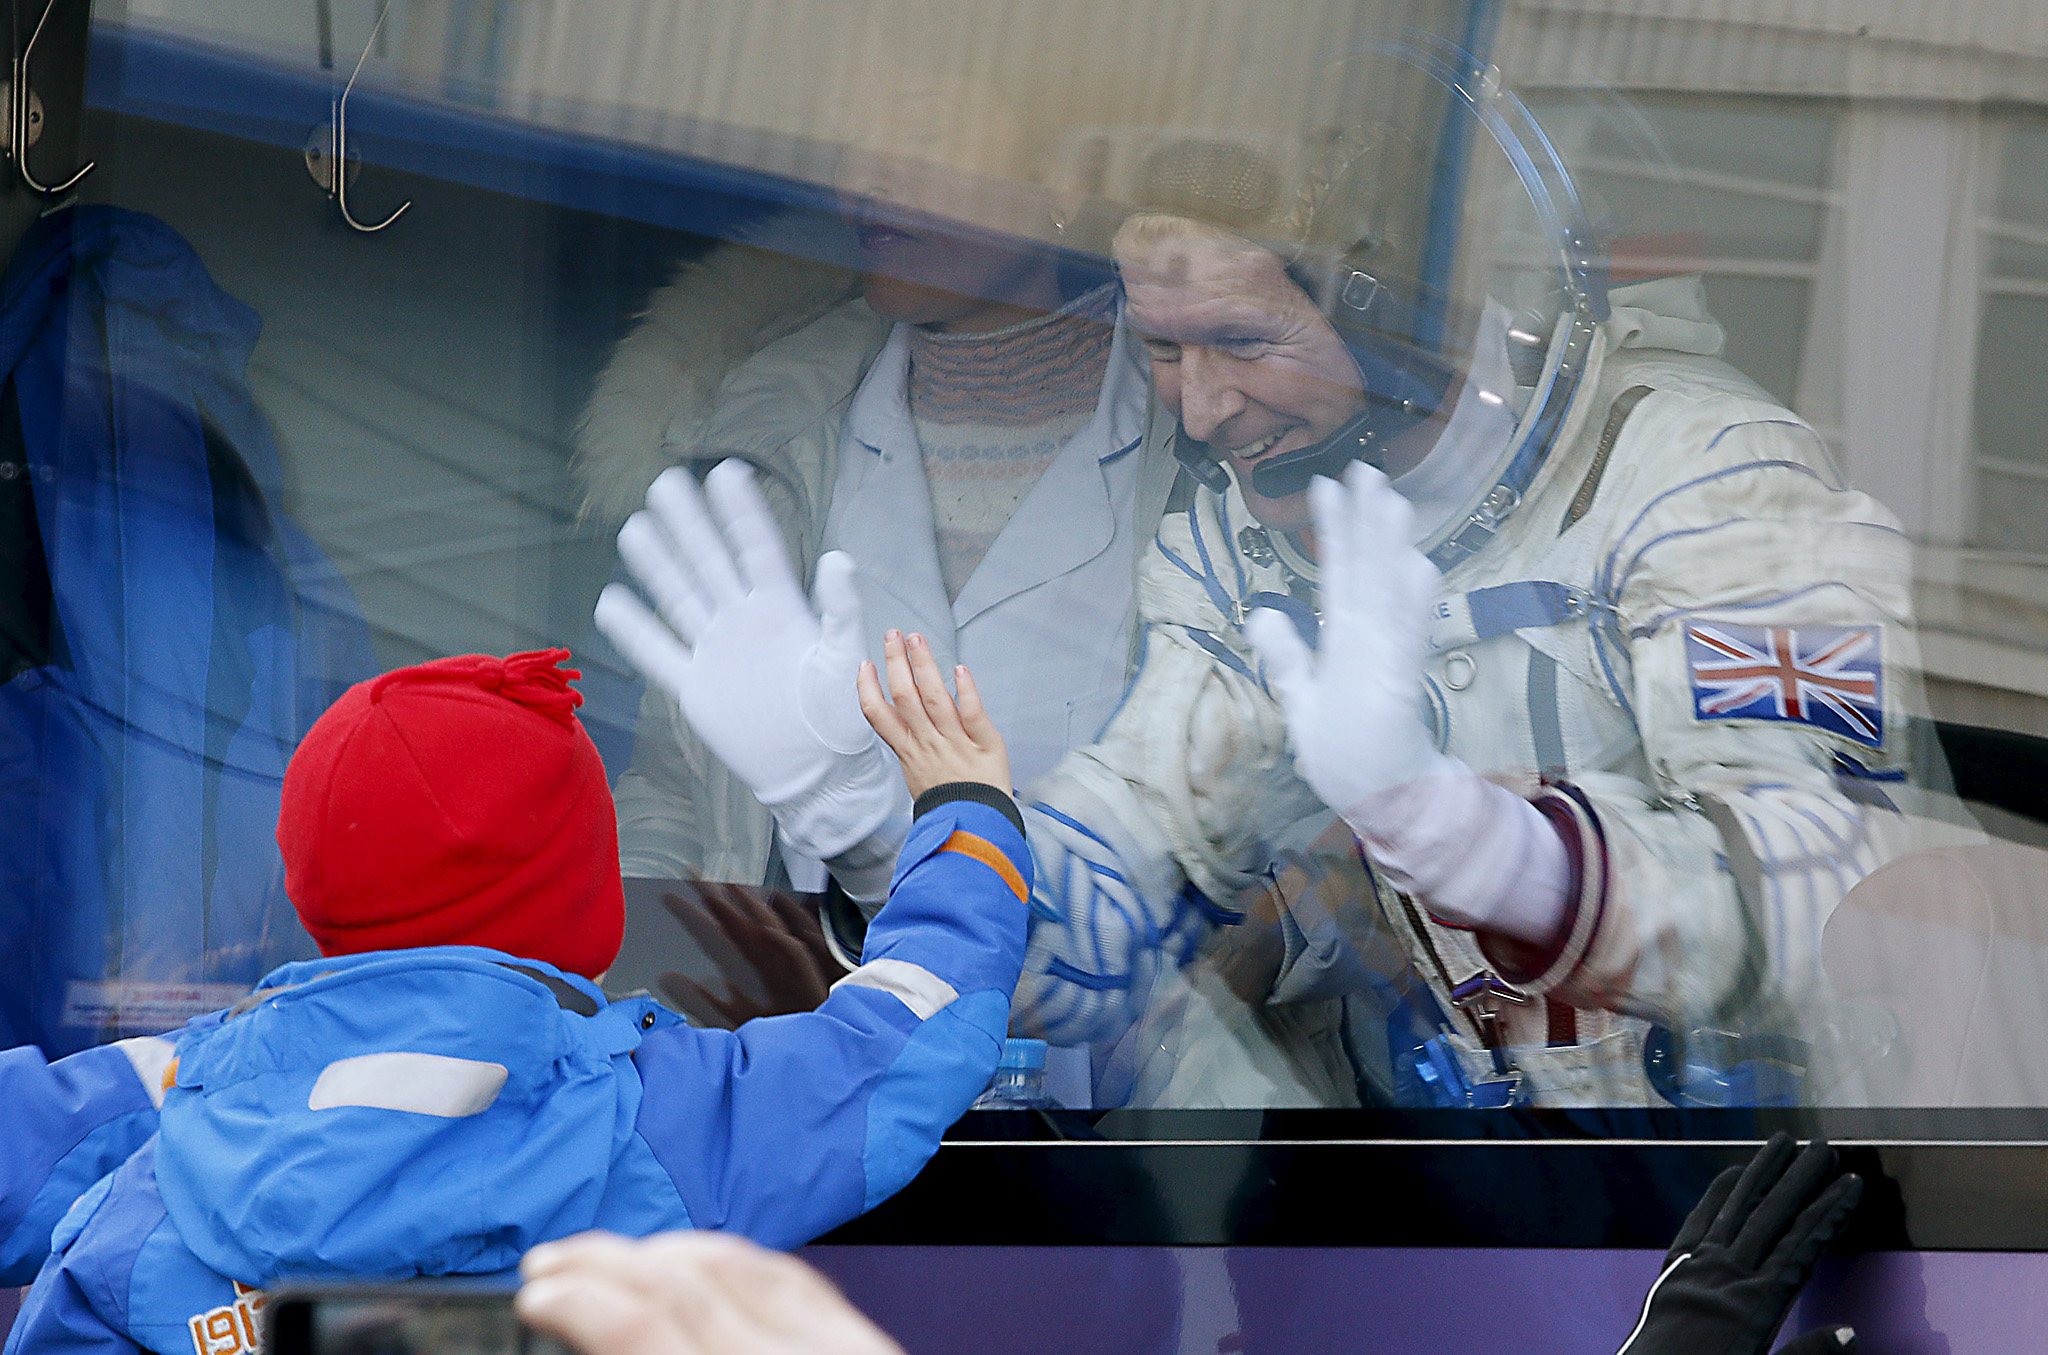 British astronaut Tim Peake, member of the main crew of the expedition to the International Space Station (ISS), waves to his children from a bus prior the launch of Soyuz TMA-19M space ship at the Russian leased Baikonur cosmodrome, Kazakhstan...British astronaut Tim Peake, member of the main crew of the expedition to the International Space Station (ISS), waves to his children from a bus prior the launch of Soyuz TMA-19M space ship at the Russian leased Baikonur cosmodrome, Kazakhstan, Tuesday, Dec. 15, 2015.  REUTERS/Dmitry Lovetsky/Pool